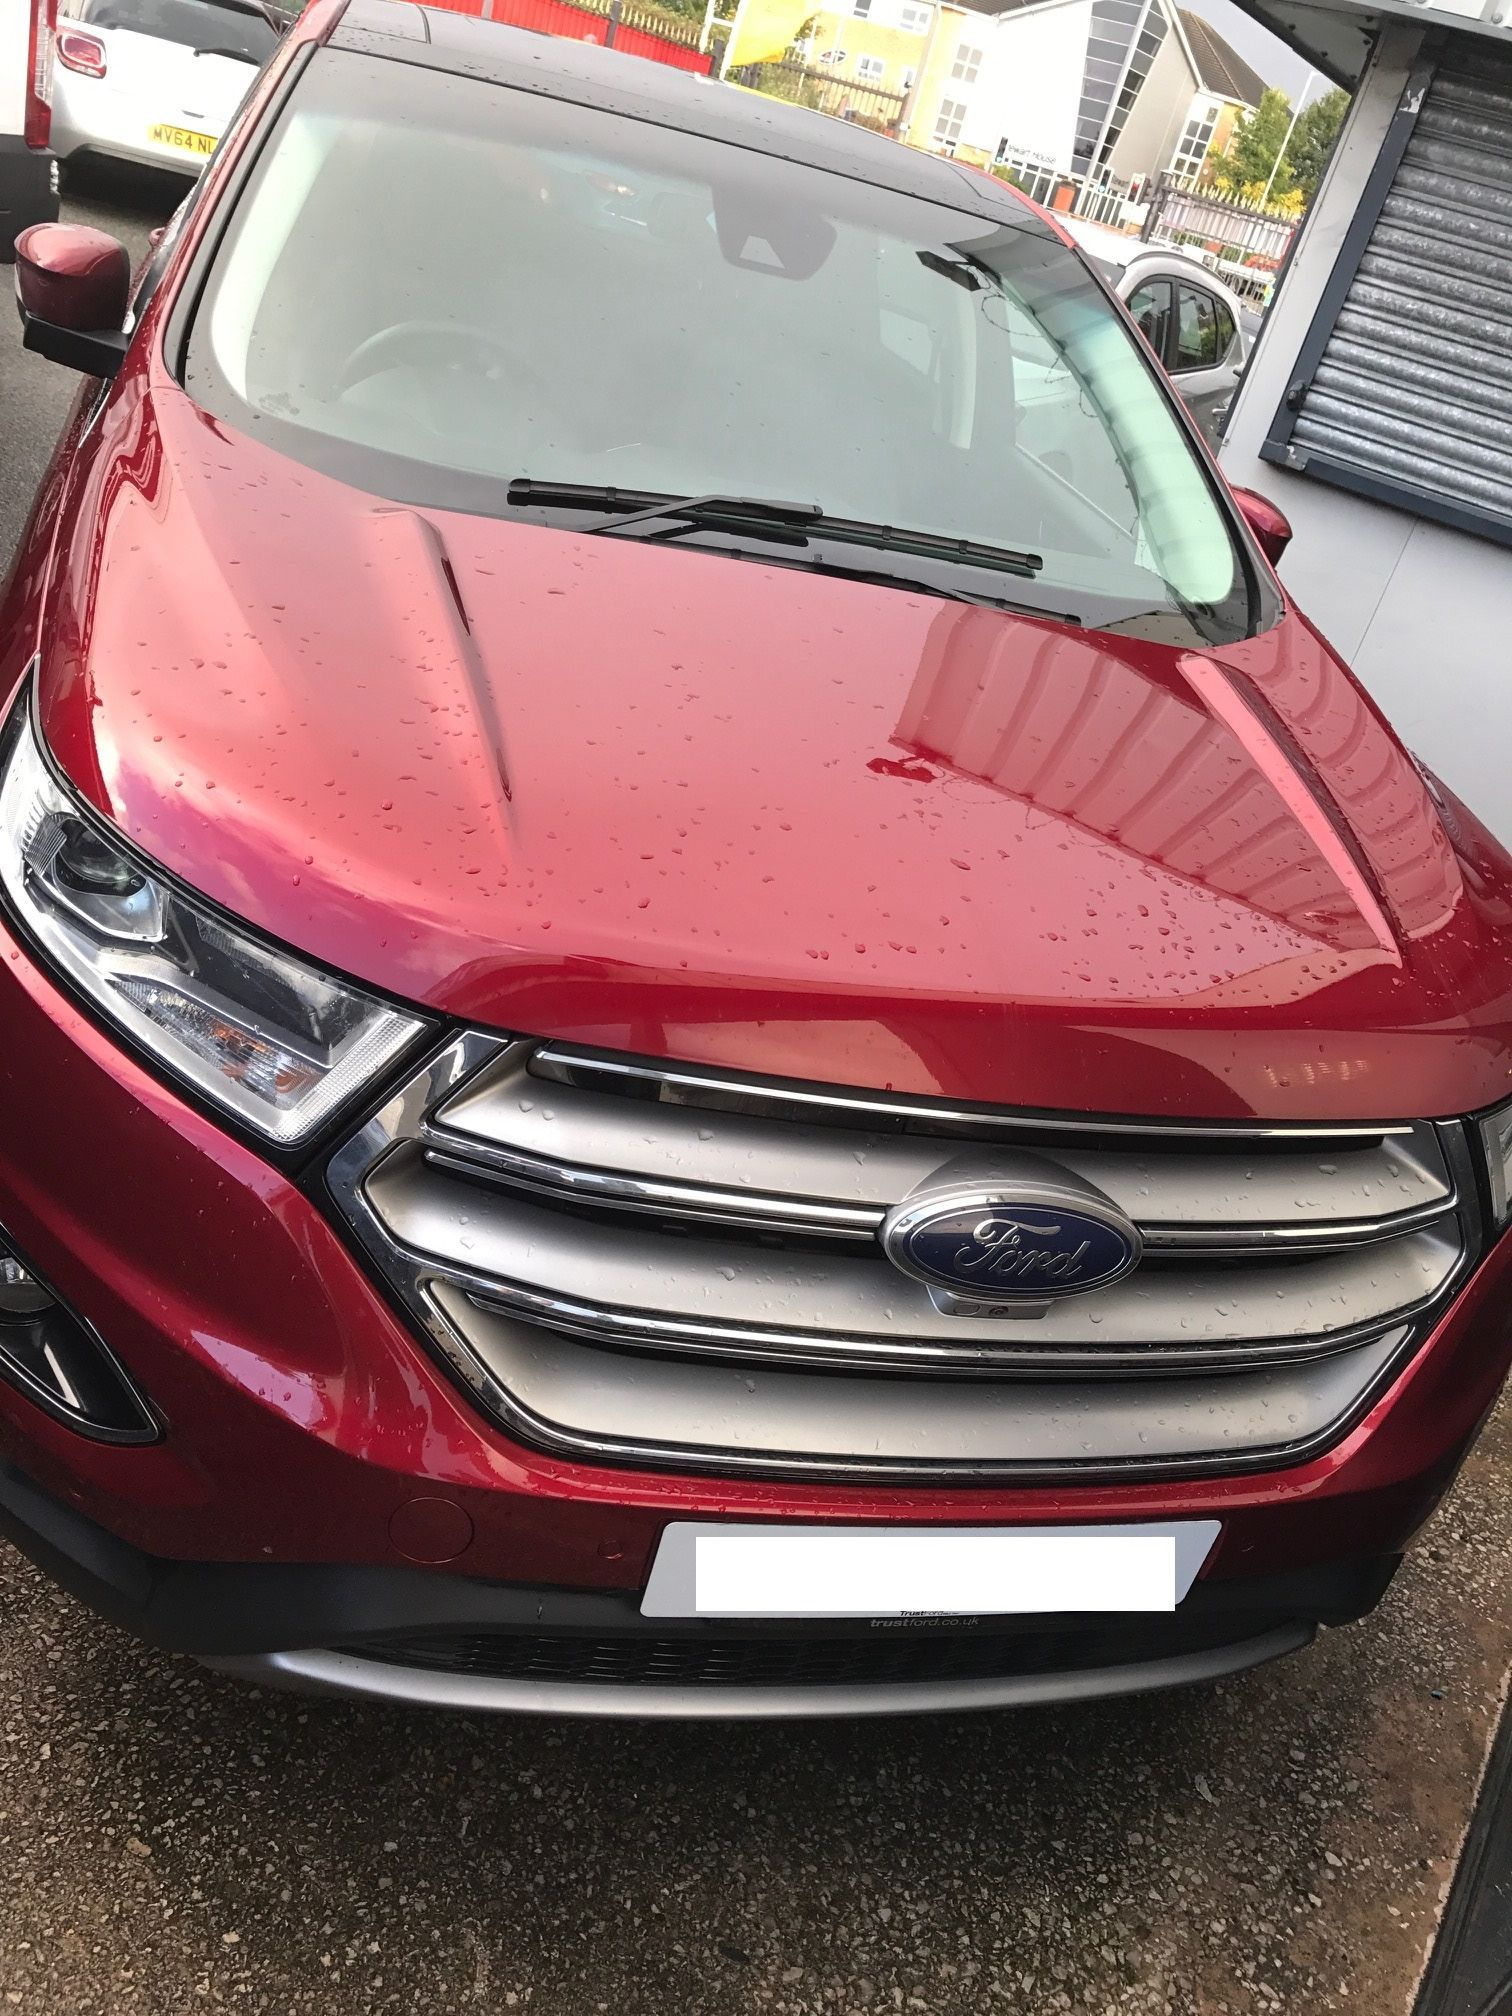 The Ford Edge Leasing Deal One Of The Many Cars And Vans Available To Lease From Www Carlease Uk Com Ford Edge Car Lease Sport Cars